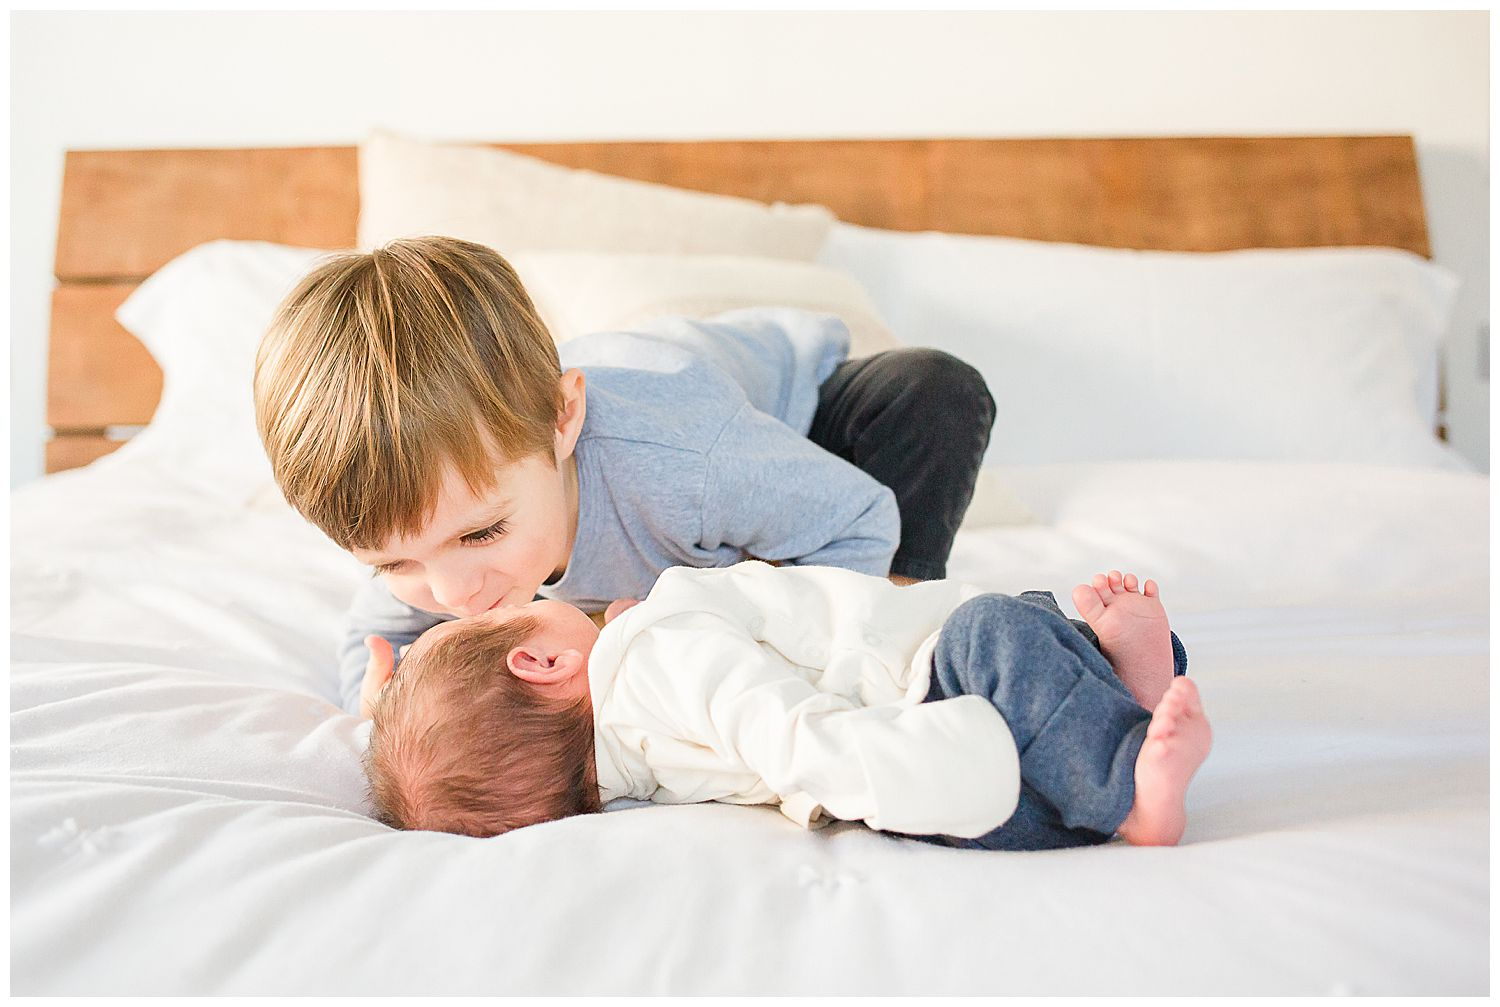 3 year old kissing baby brother